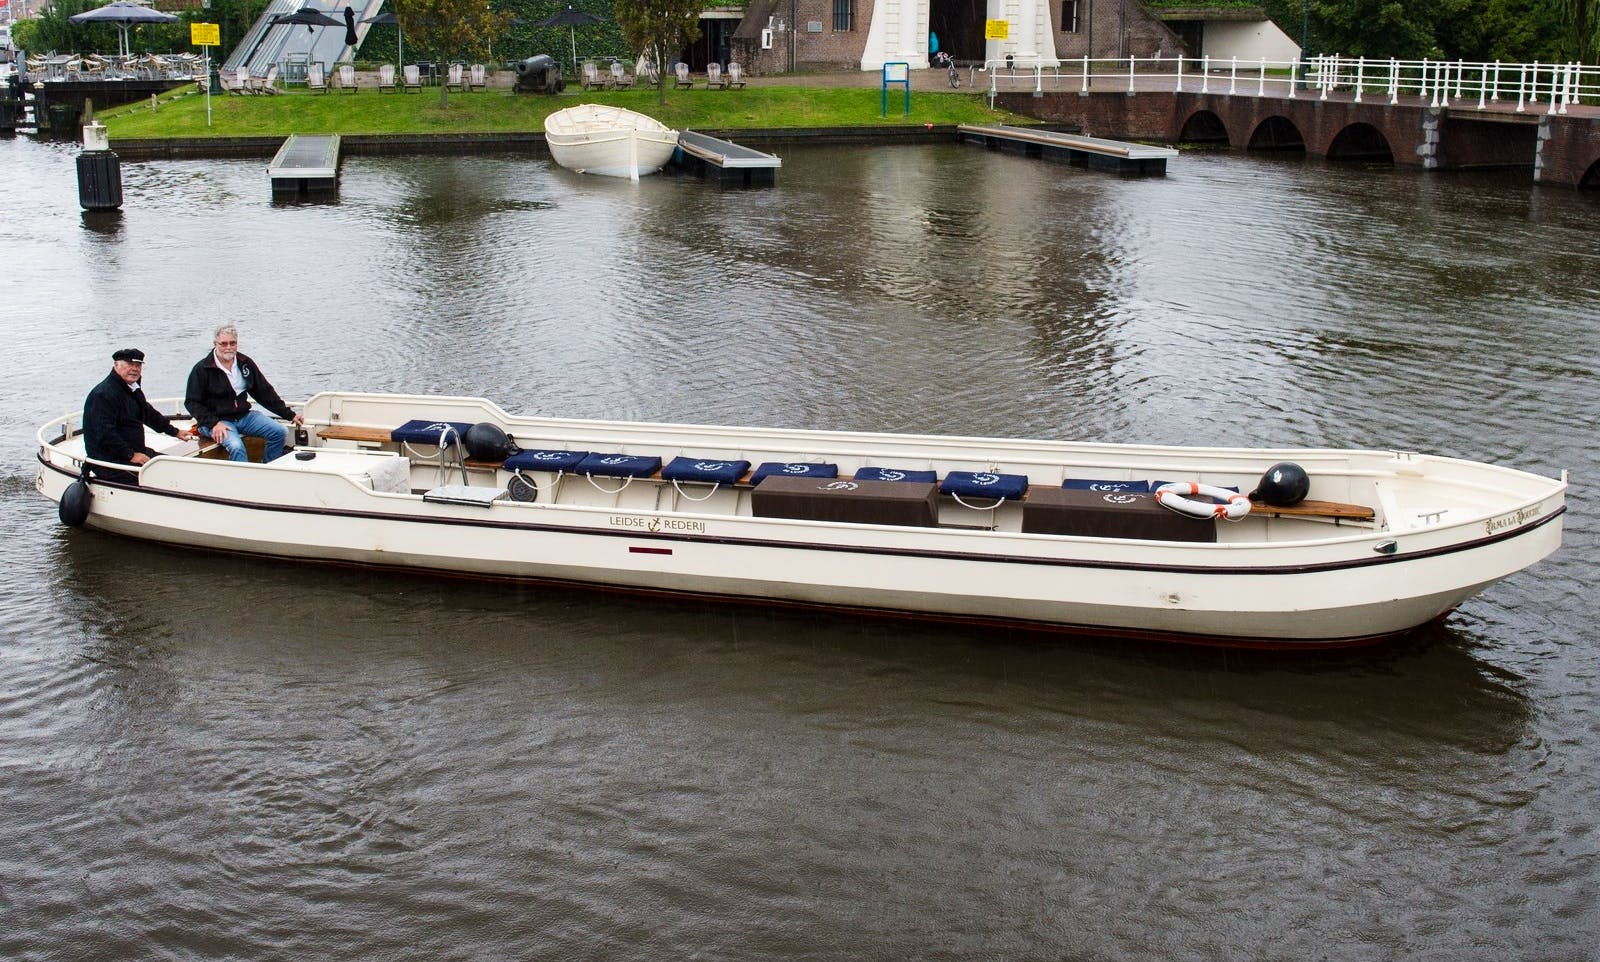 Wheelchair Accessible Flat Boat for Charter in Leiden, Netherlands